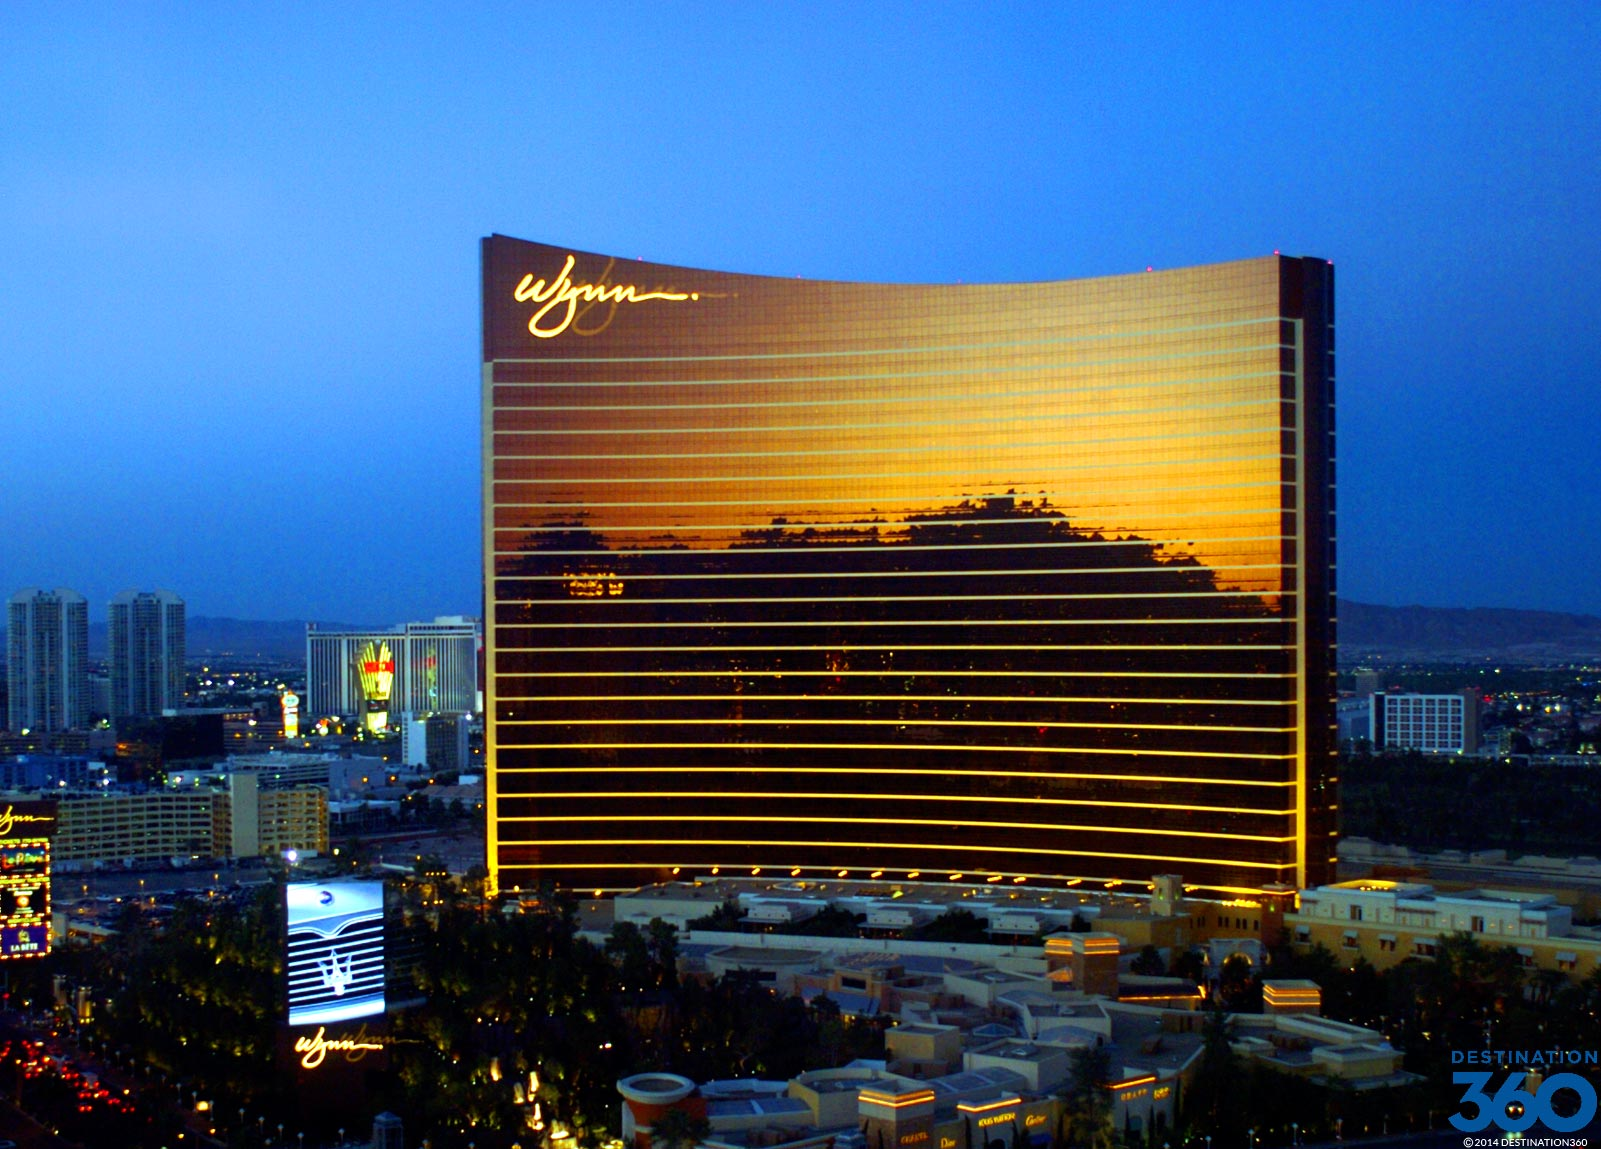 wynn casino in las vegas